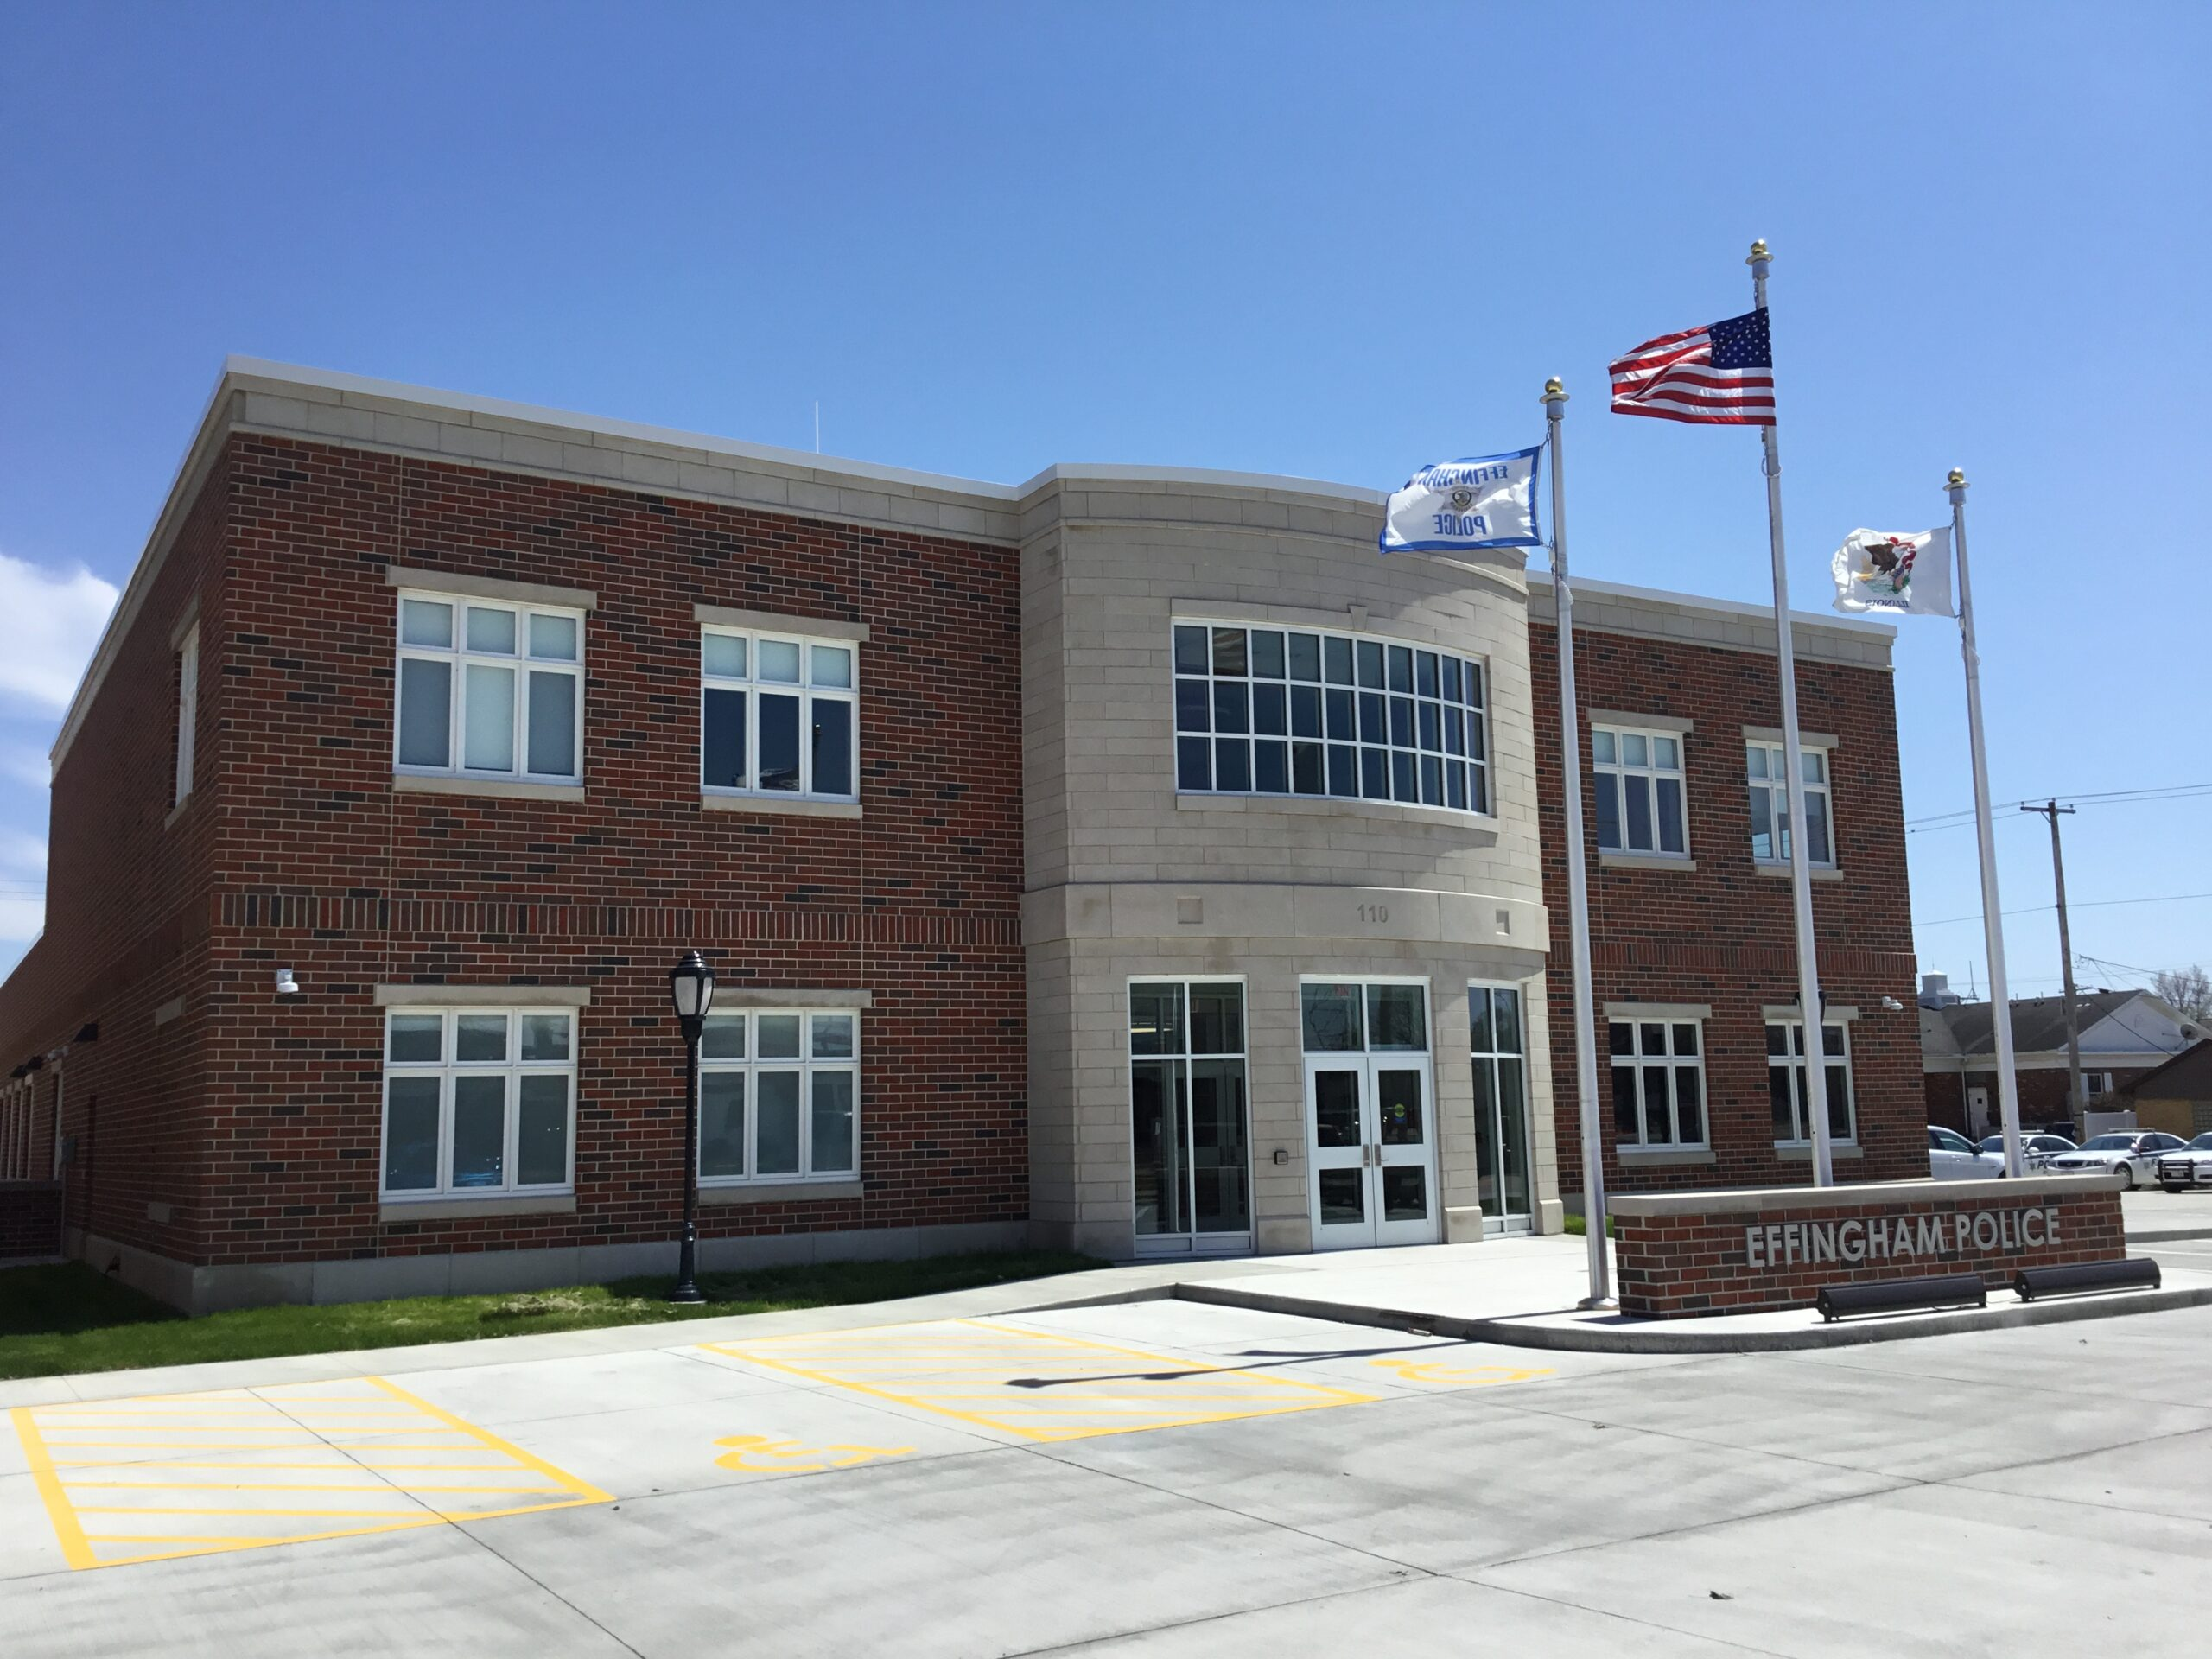 Effingham Police Station by Fager-McGee